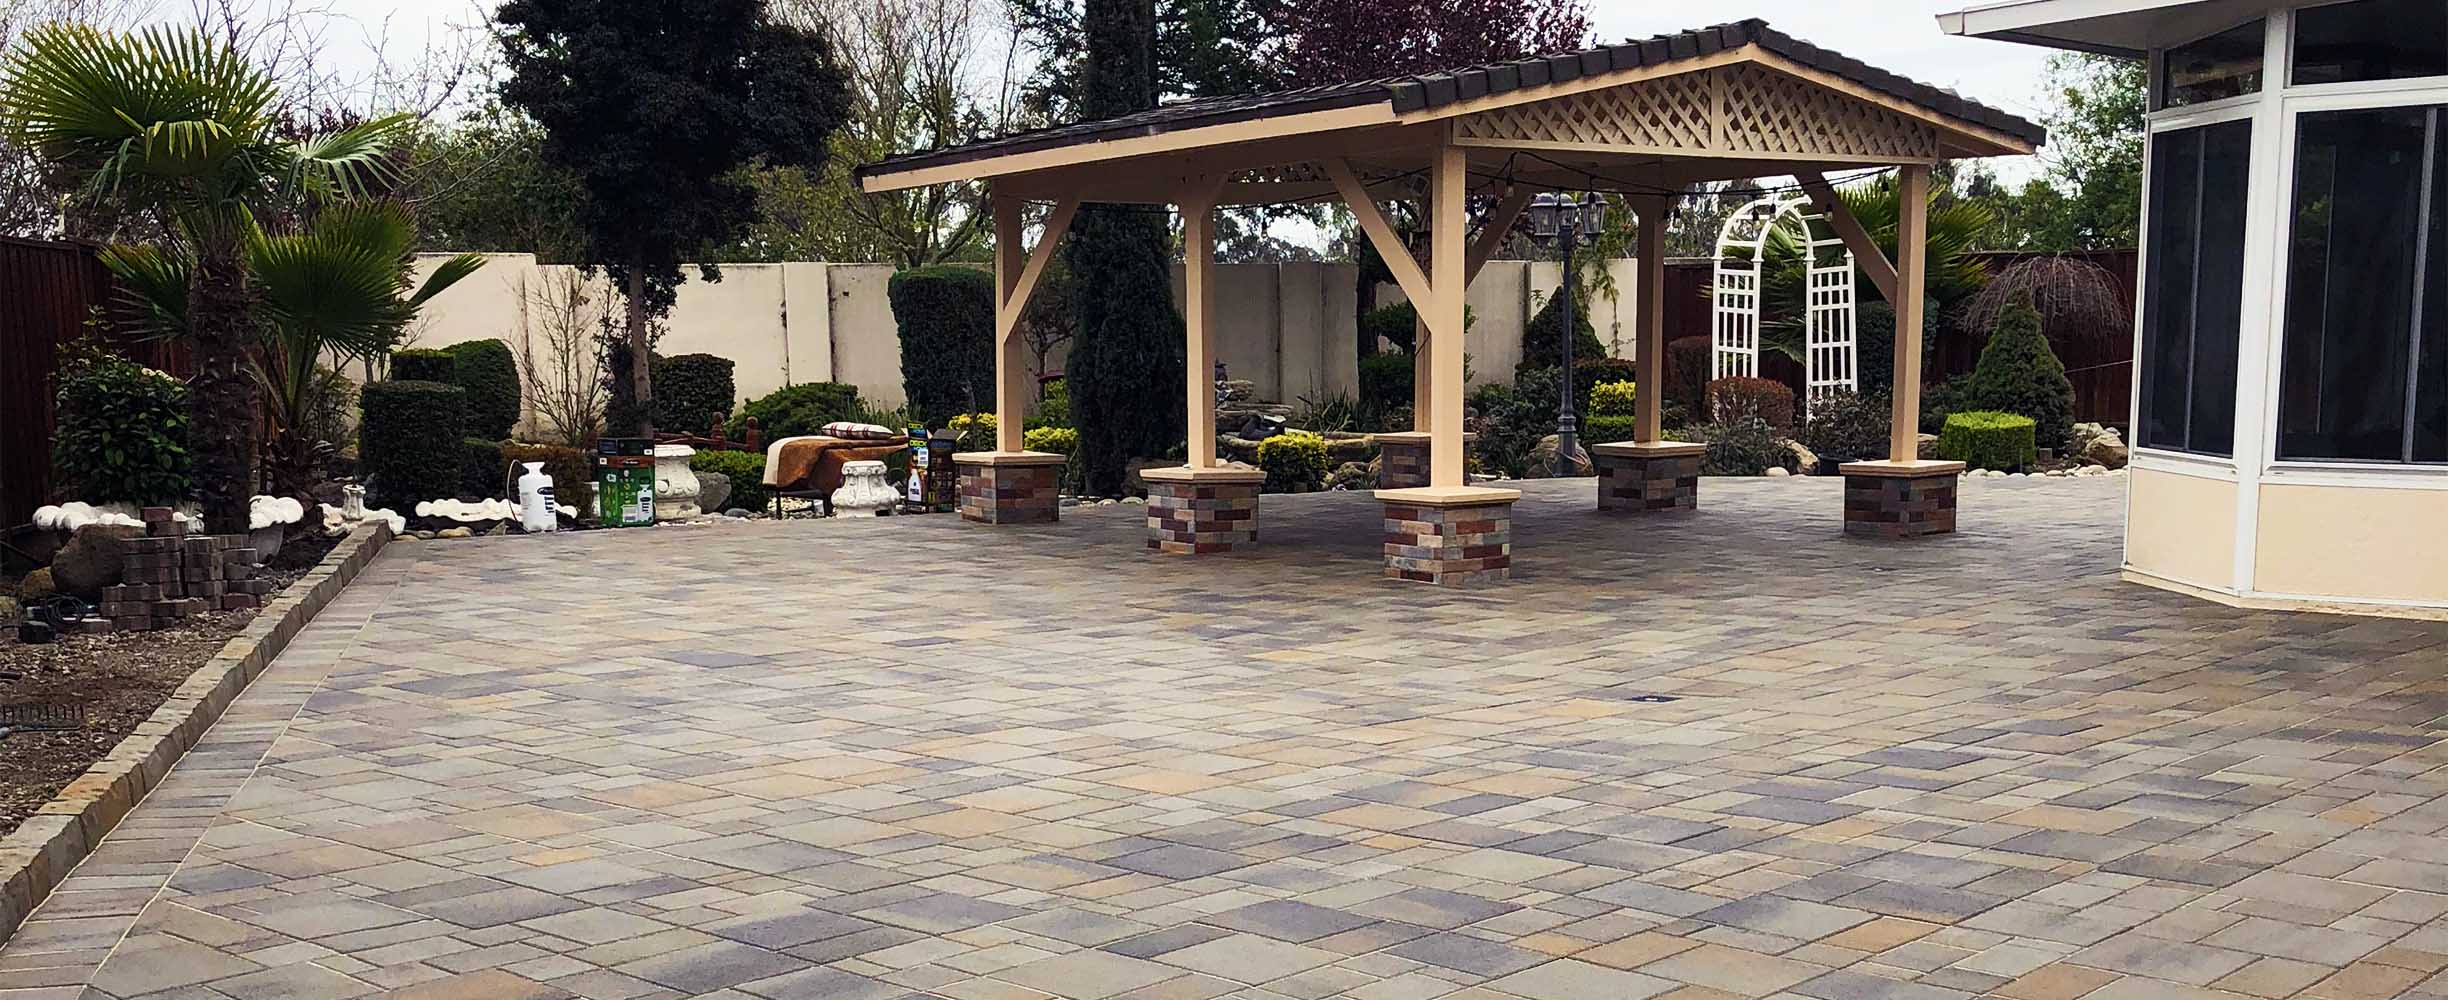 Landscaping projet of a pergola style wooden structure in a patio covered with stone pavers,antique style, in woodside, california.